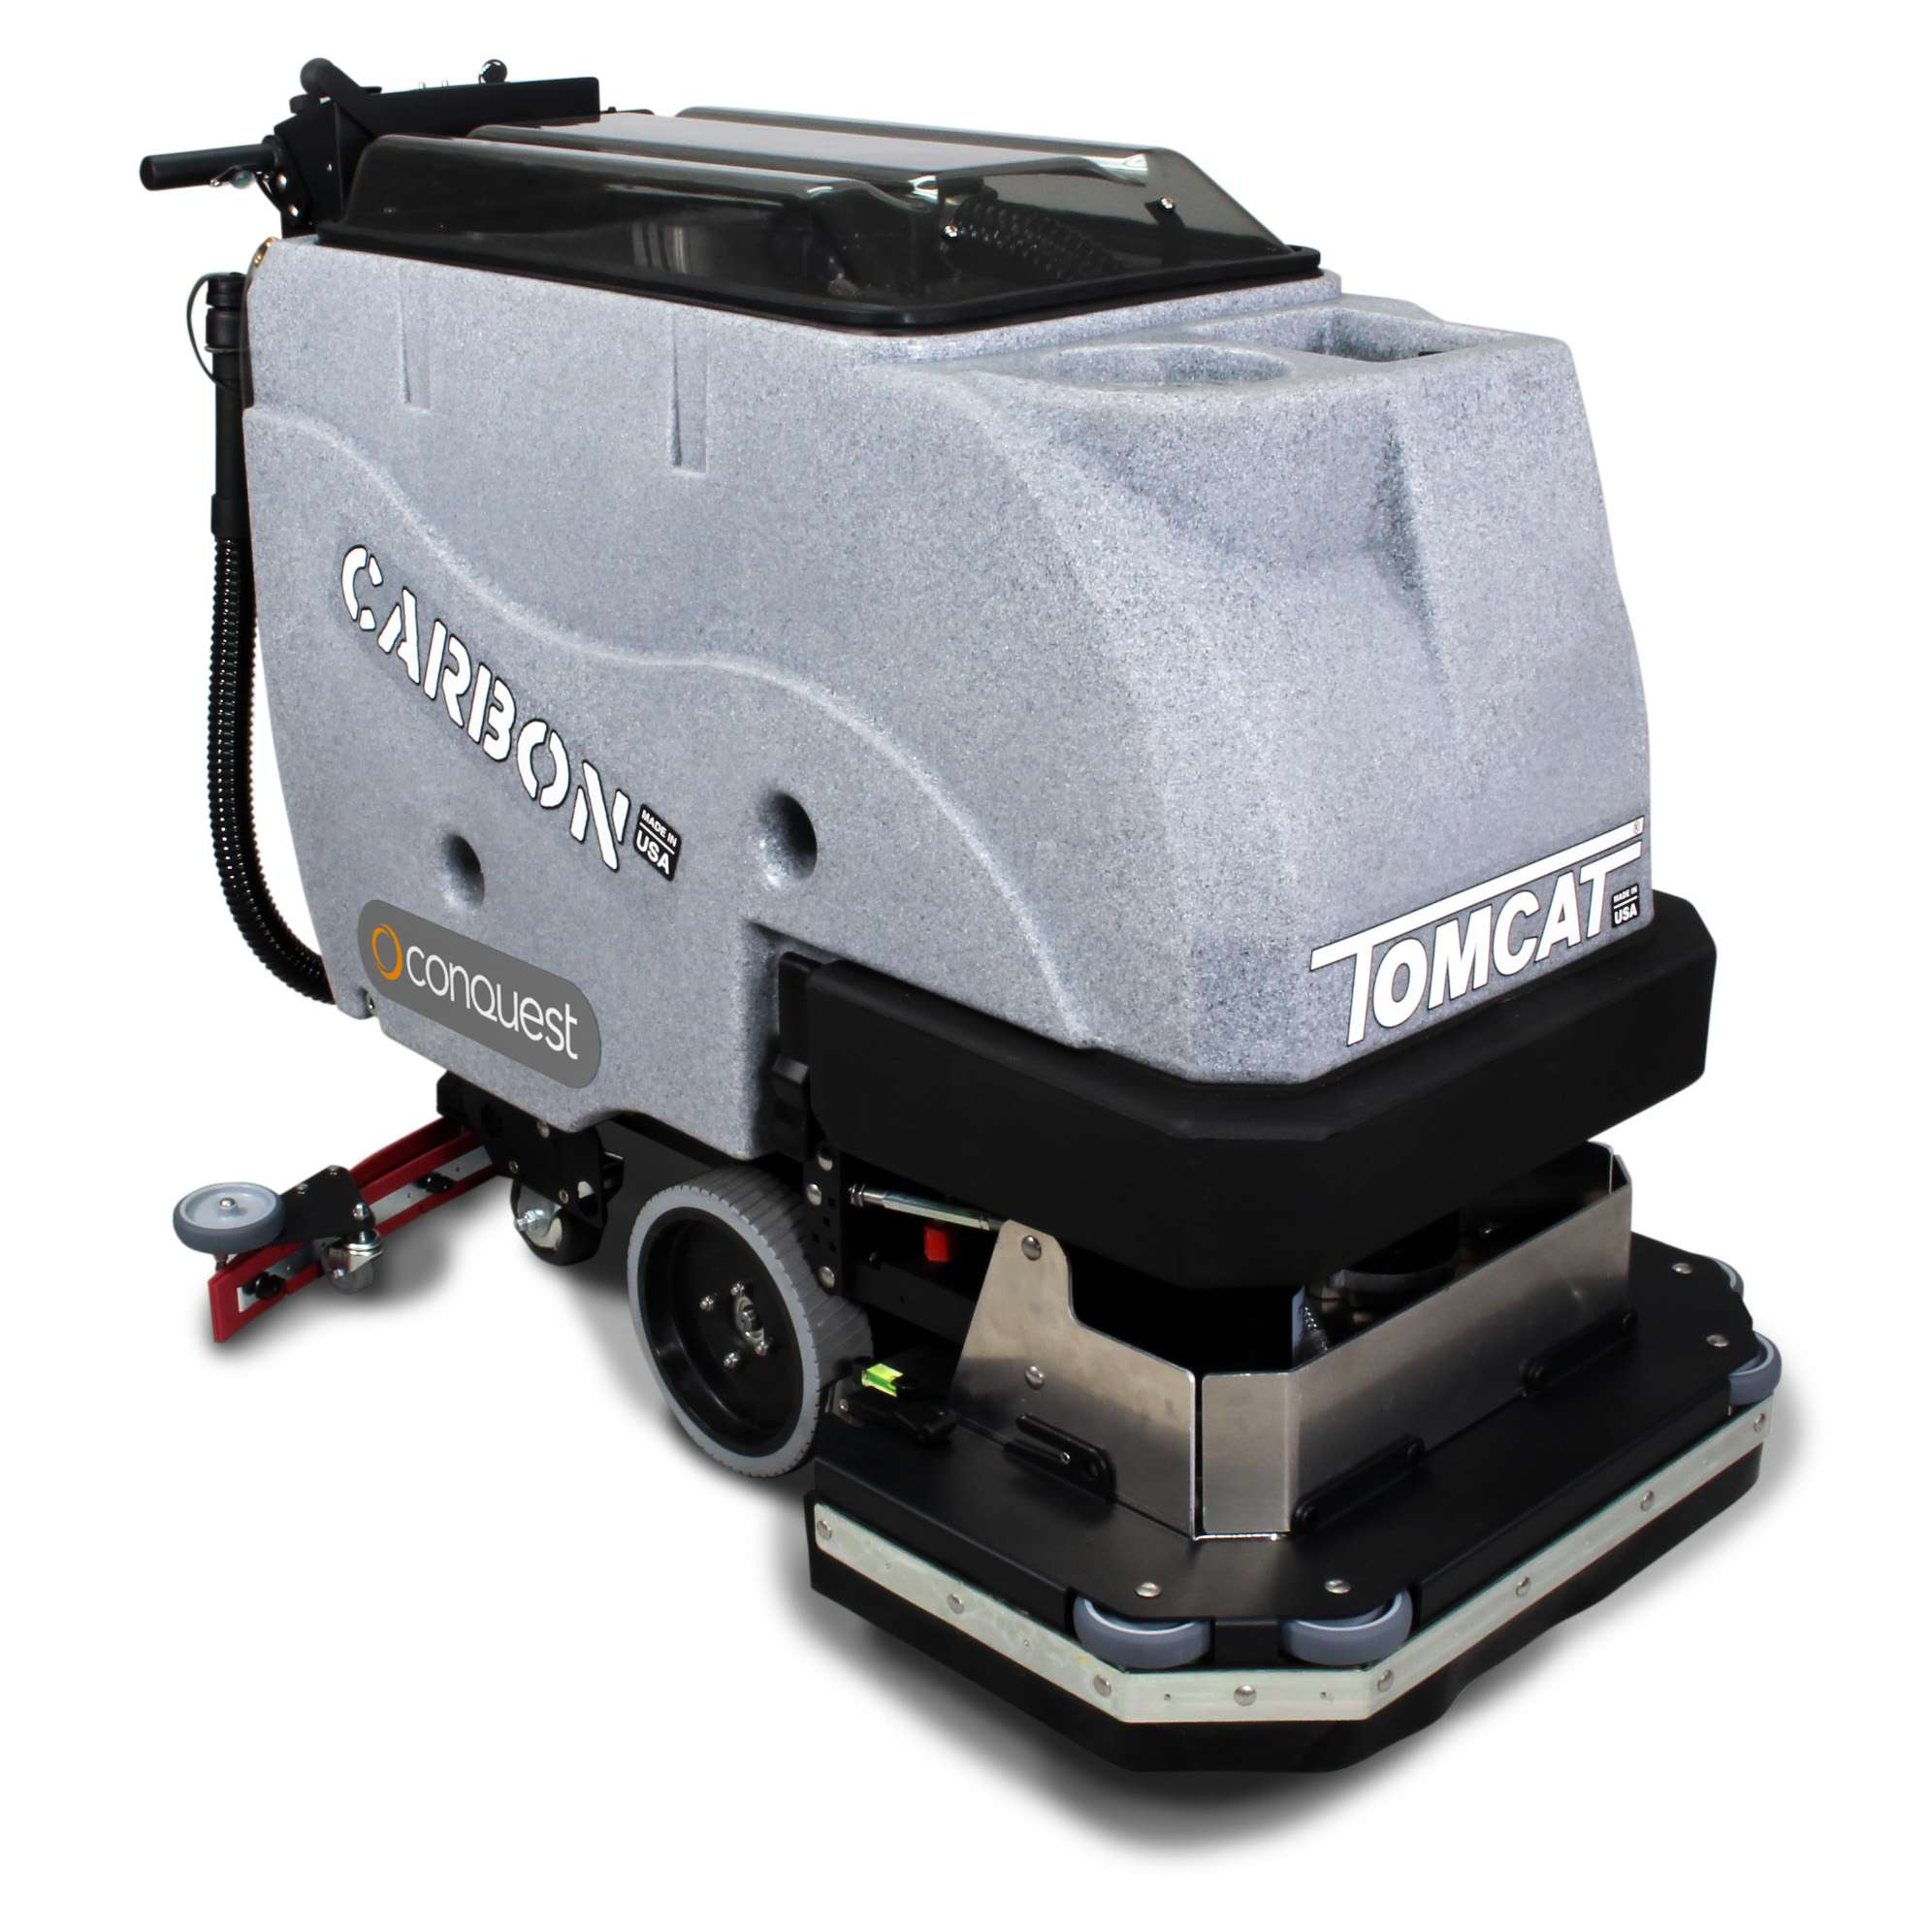 tomcat scrubber products floors angle duty conquest heavy scrubbers front recon floor cleaning powervac